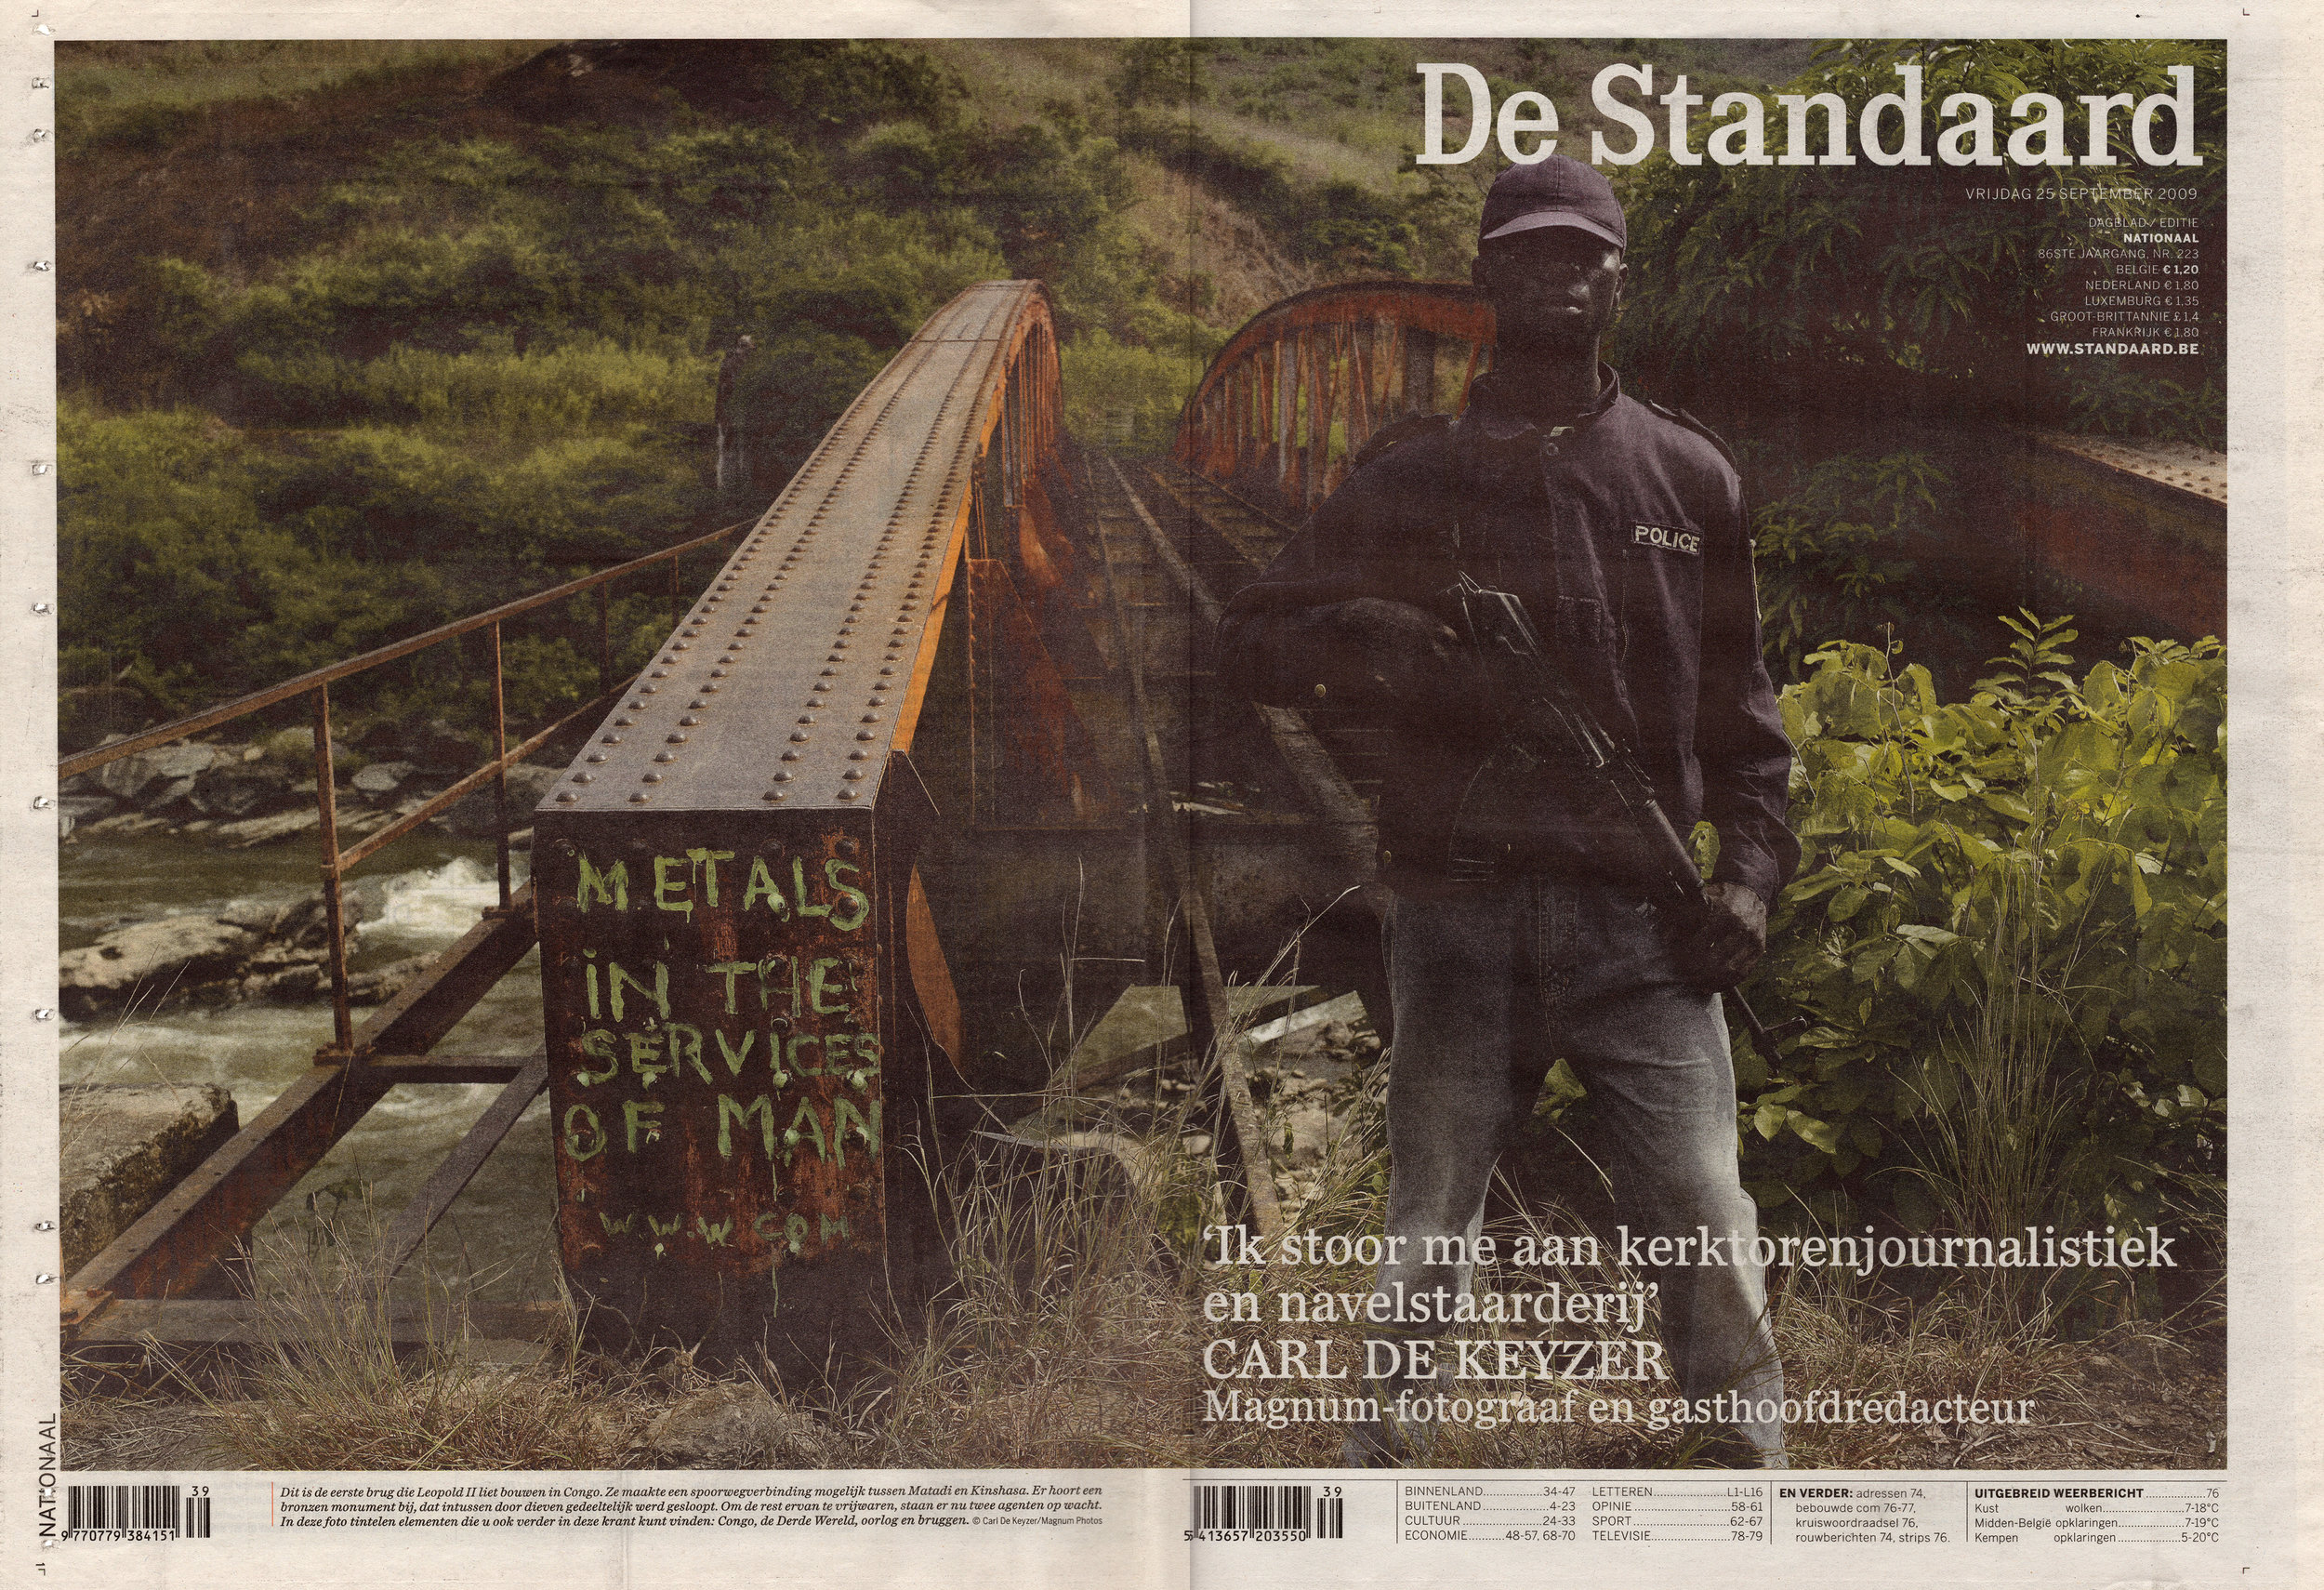 Guest chief edtior for De Standaard